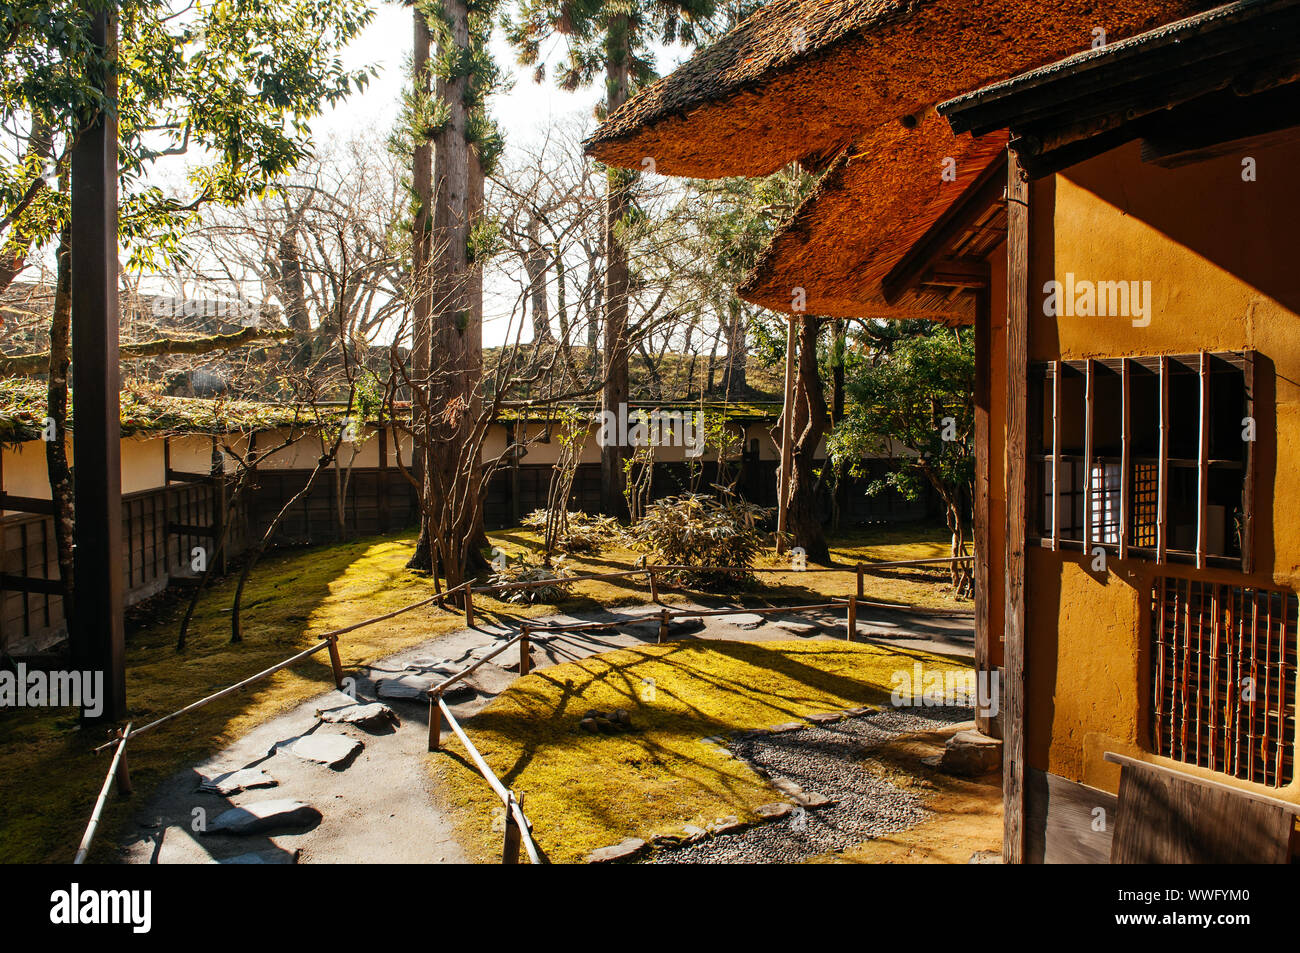 House Rural Japan Garden High Resolution Stock Photography And Images Alamy